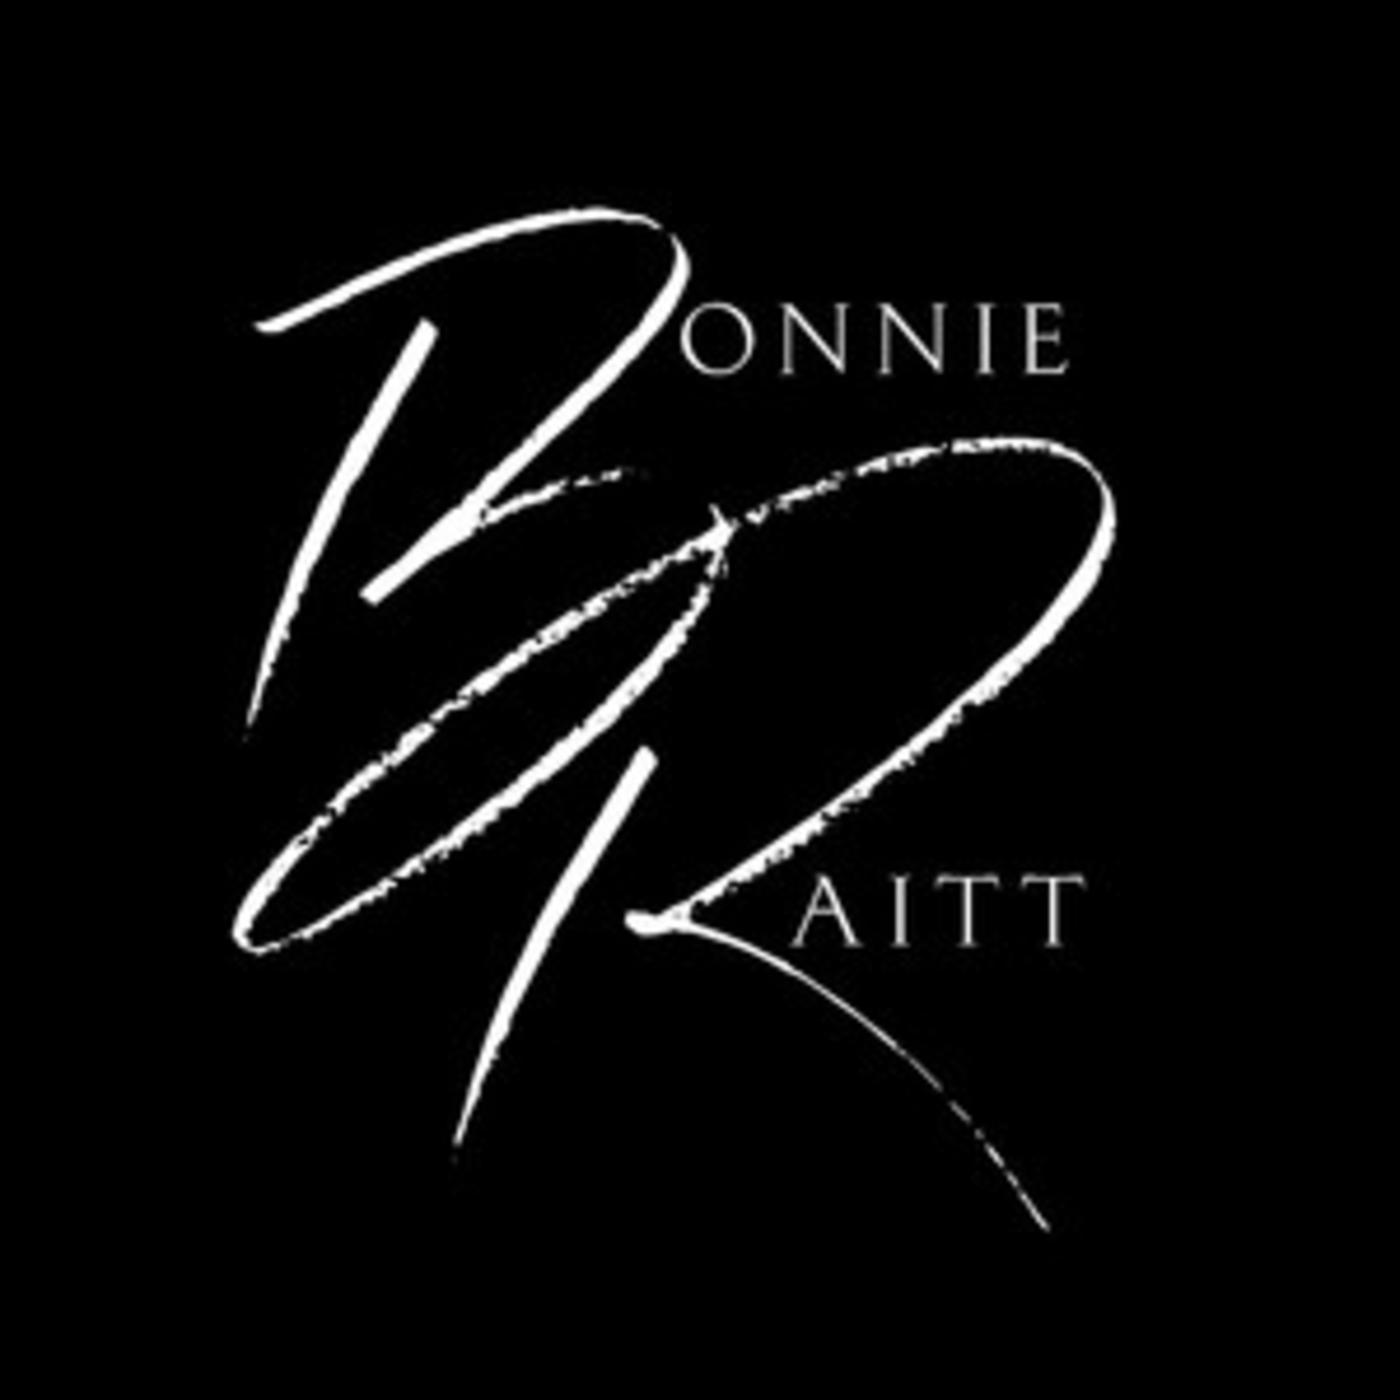 Official Bonnie Raitt playlist - Finest Lovin' Man, Give It Up Or Let Me Go, Women Be Wise, Guilty